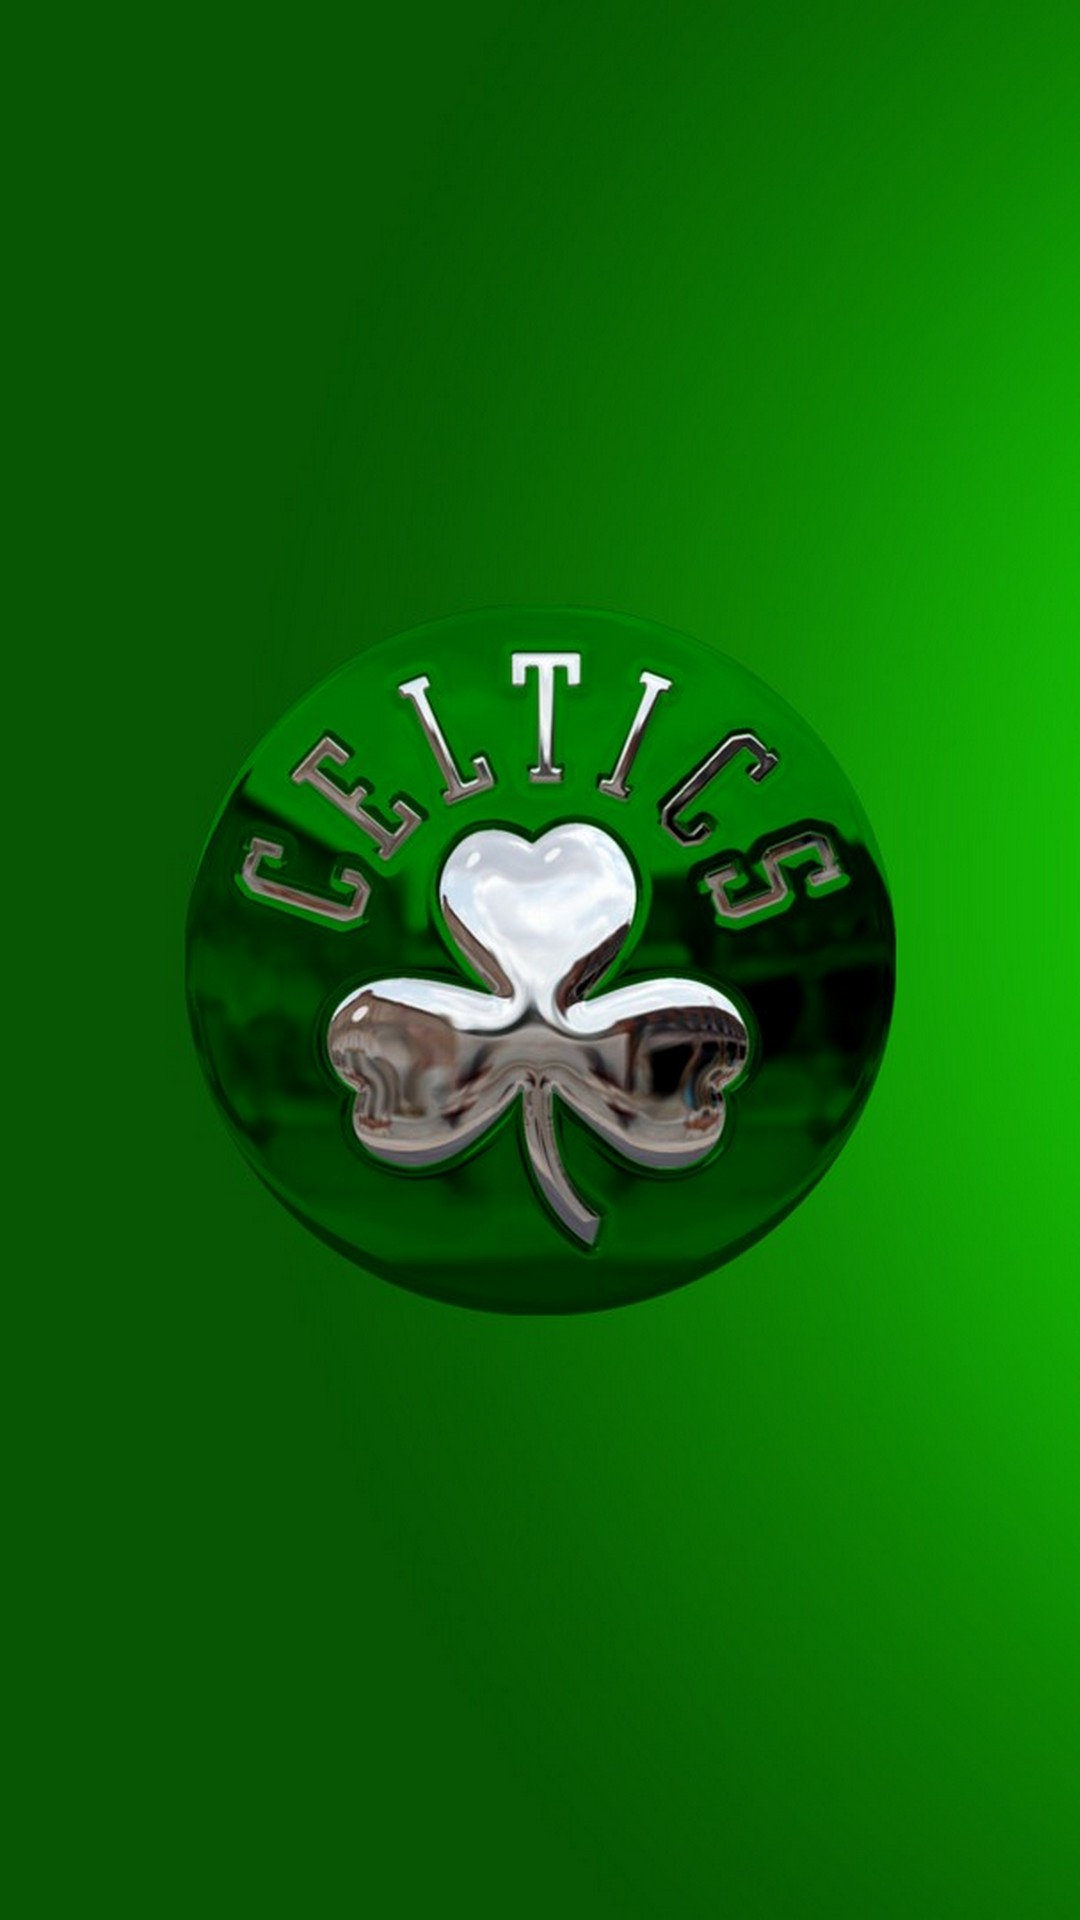 Boston Celtics Wallpaper For Android   2020 Android Wallpapers 1080x1920